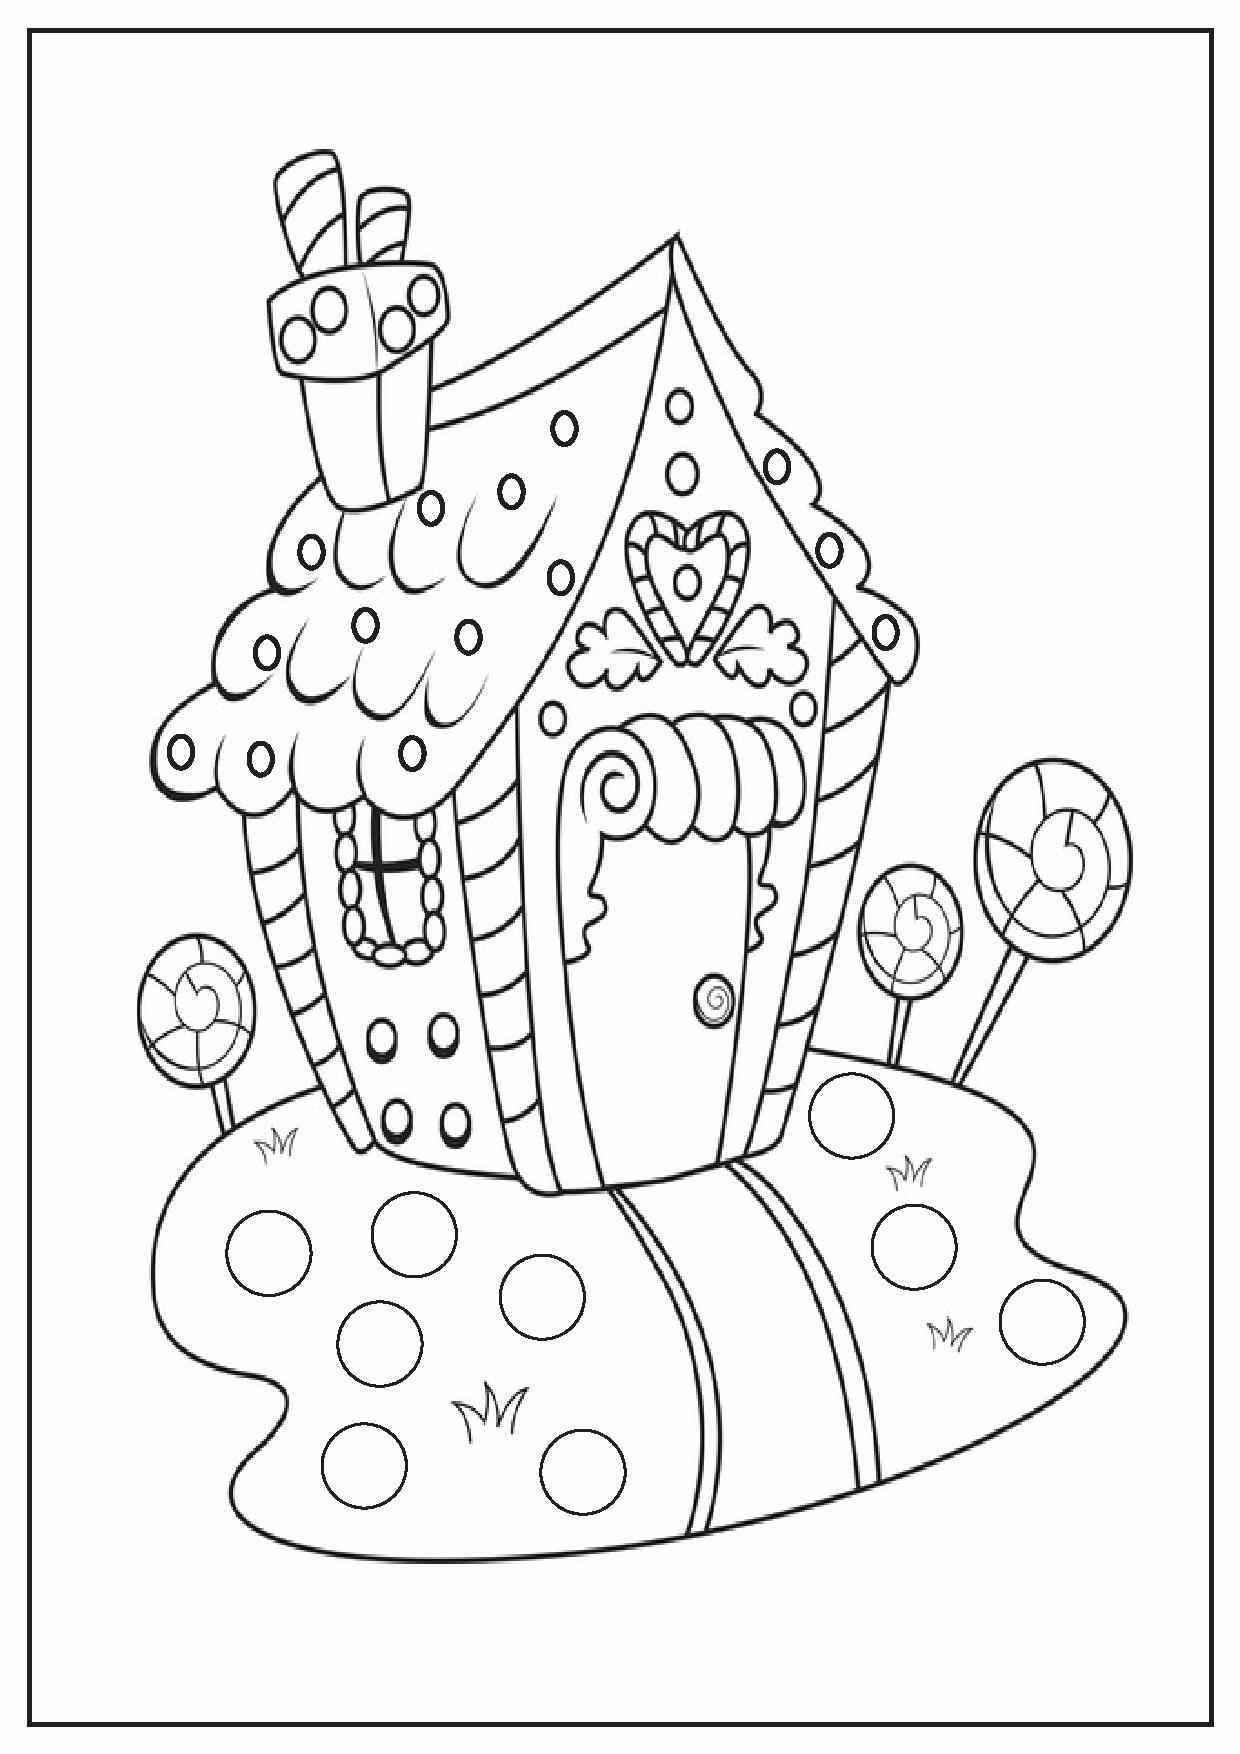 Christmas Coloring Pages With Numbers Printable